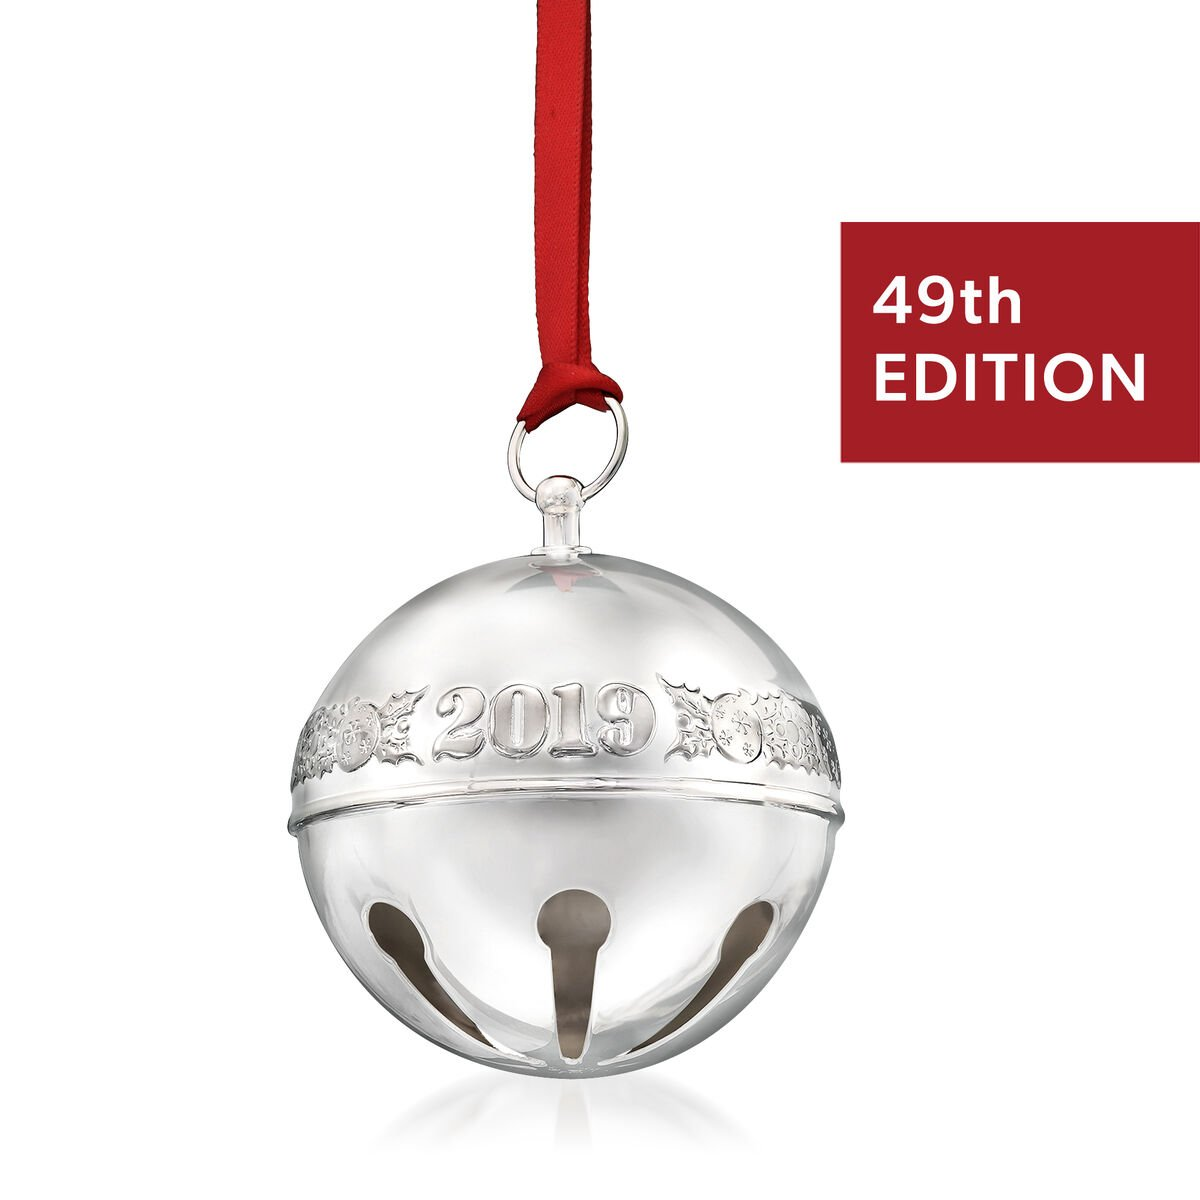 Wallace 2019 Annual Silver Plate Sleigh Bell Ornament - 49th Edition